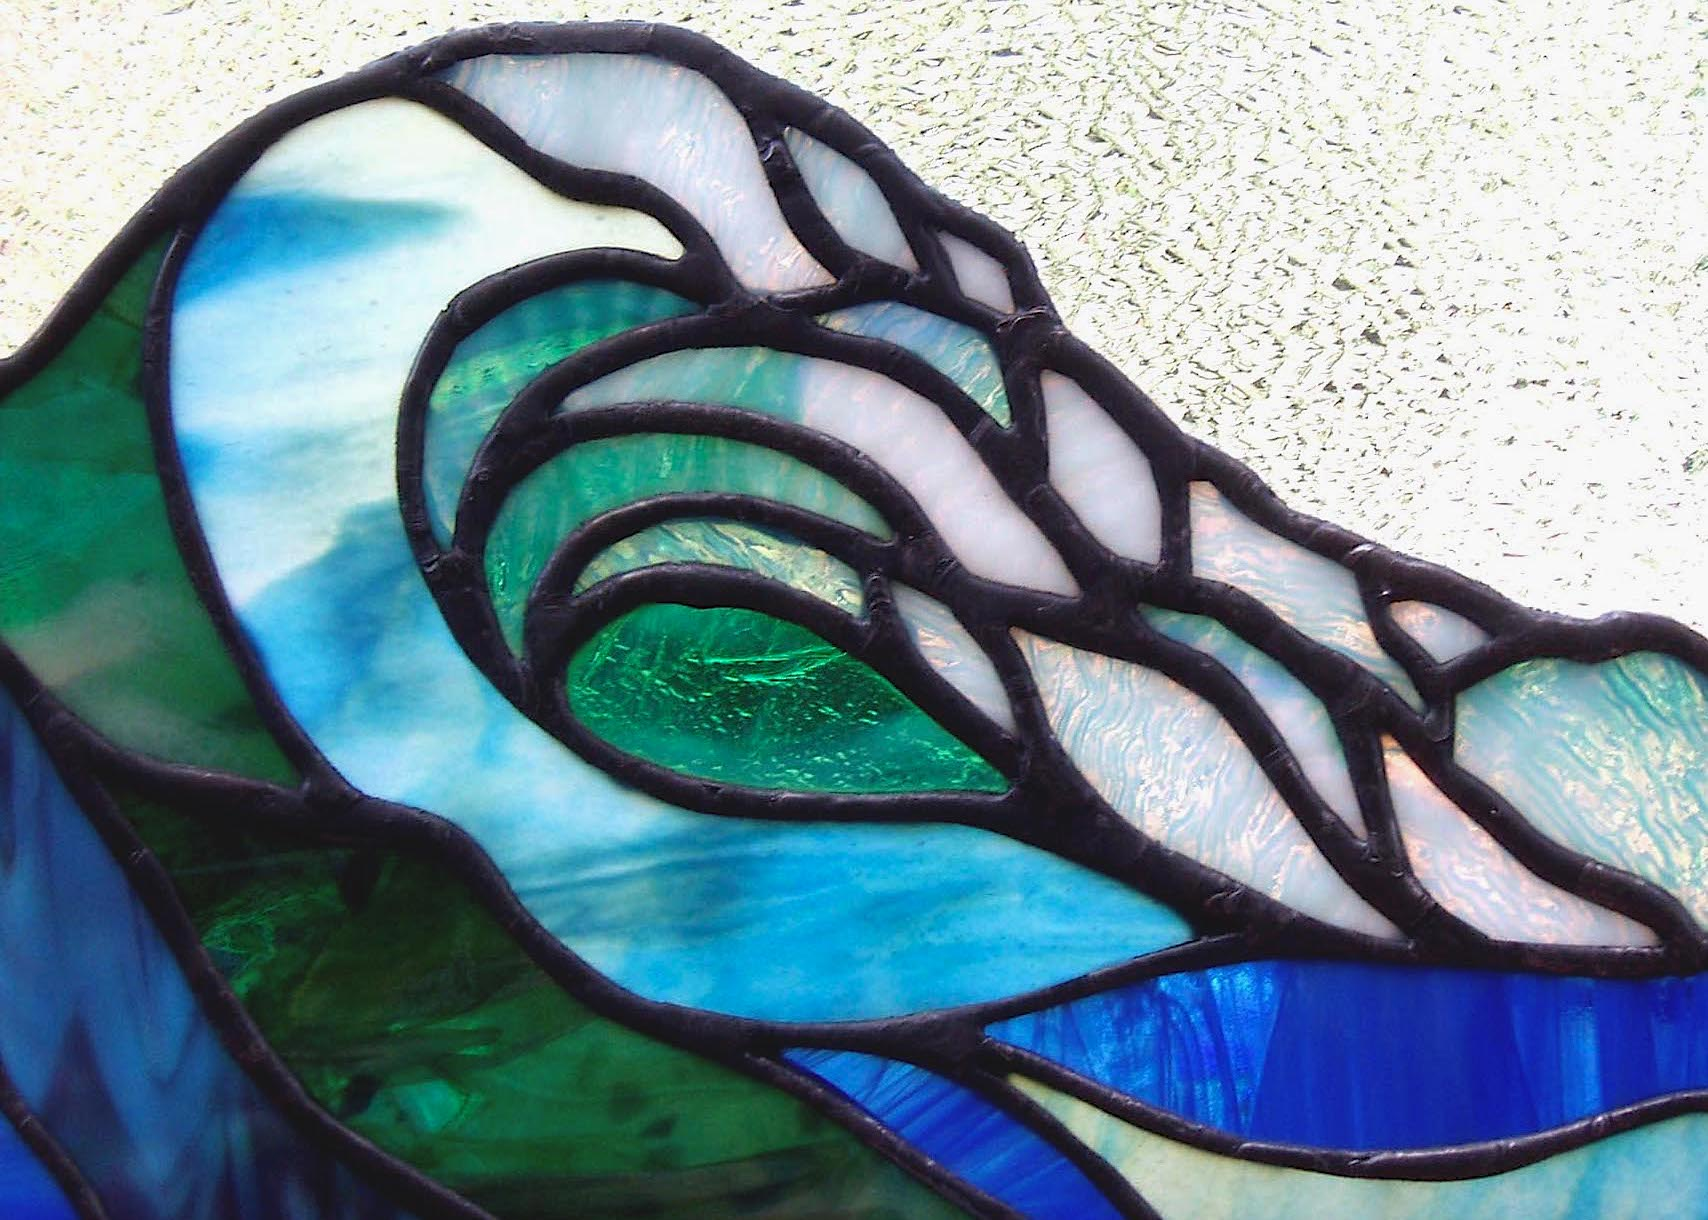 Ocean wave stained glass sun catcher